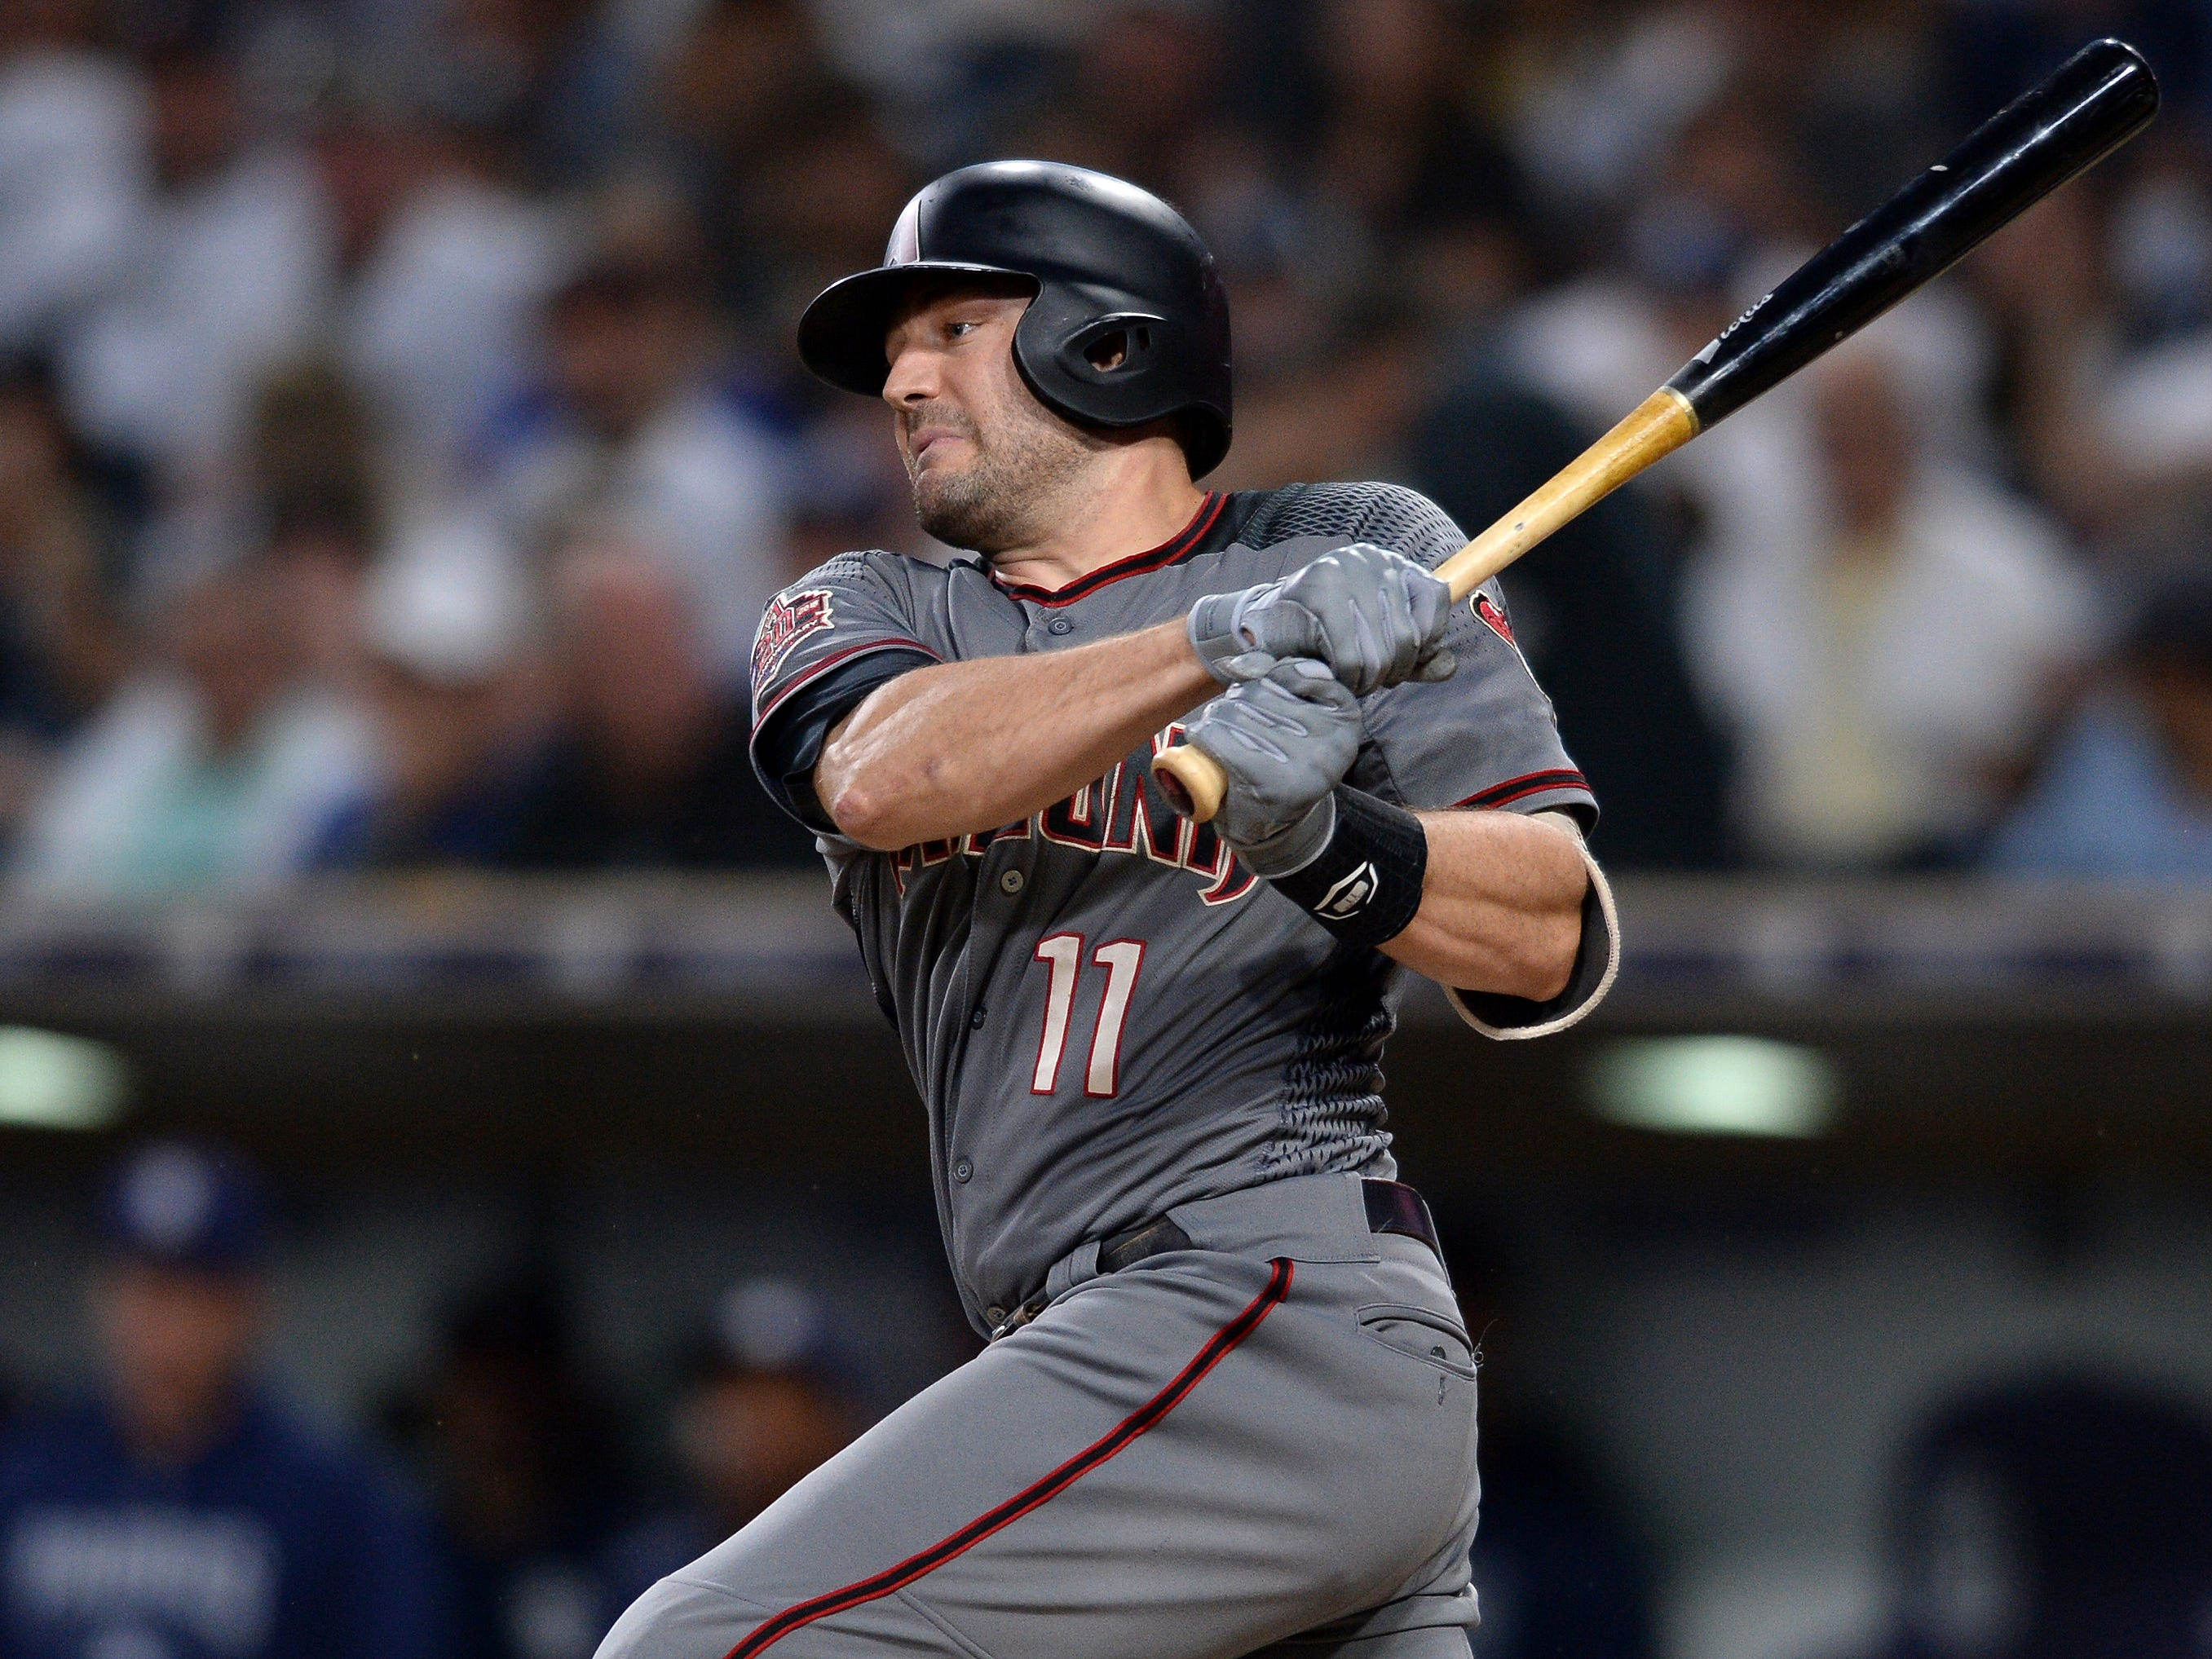 6. A.J. Pollock, CF, 31: A center fielder who can hit for power is a rare commodity, so he's heading for a nice signing day worth more than the qualifying offer he'll almost certainly reject. Prediction: Reds, five years, $67 million